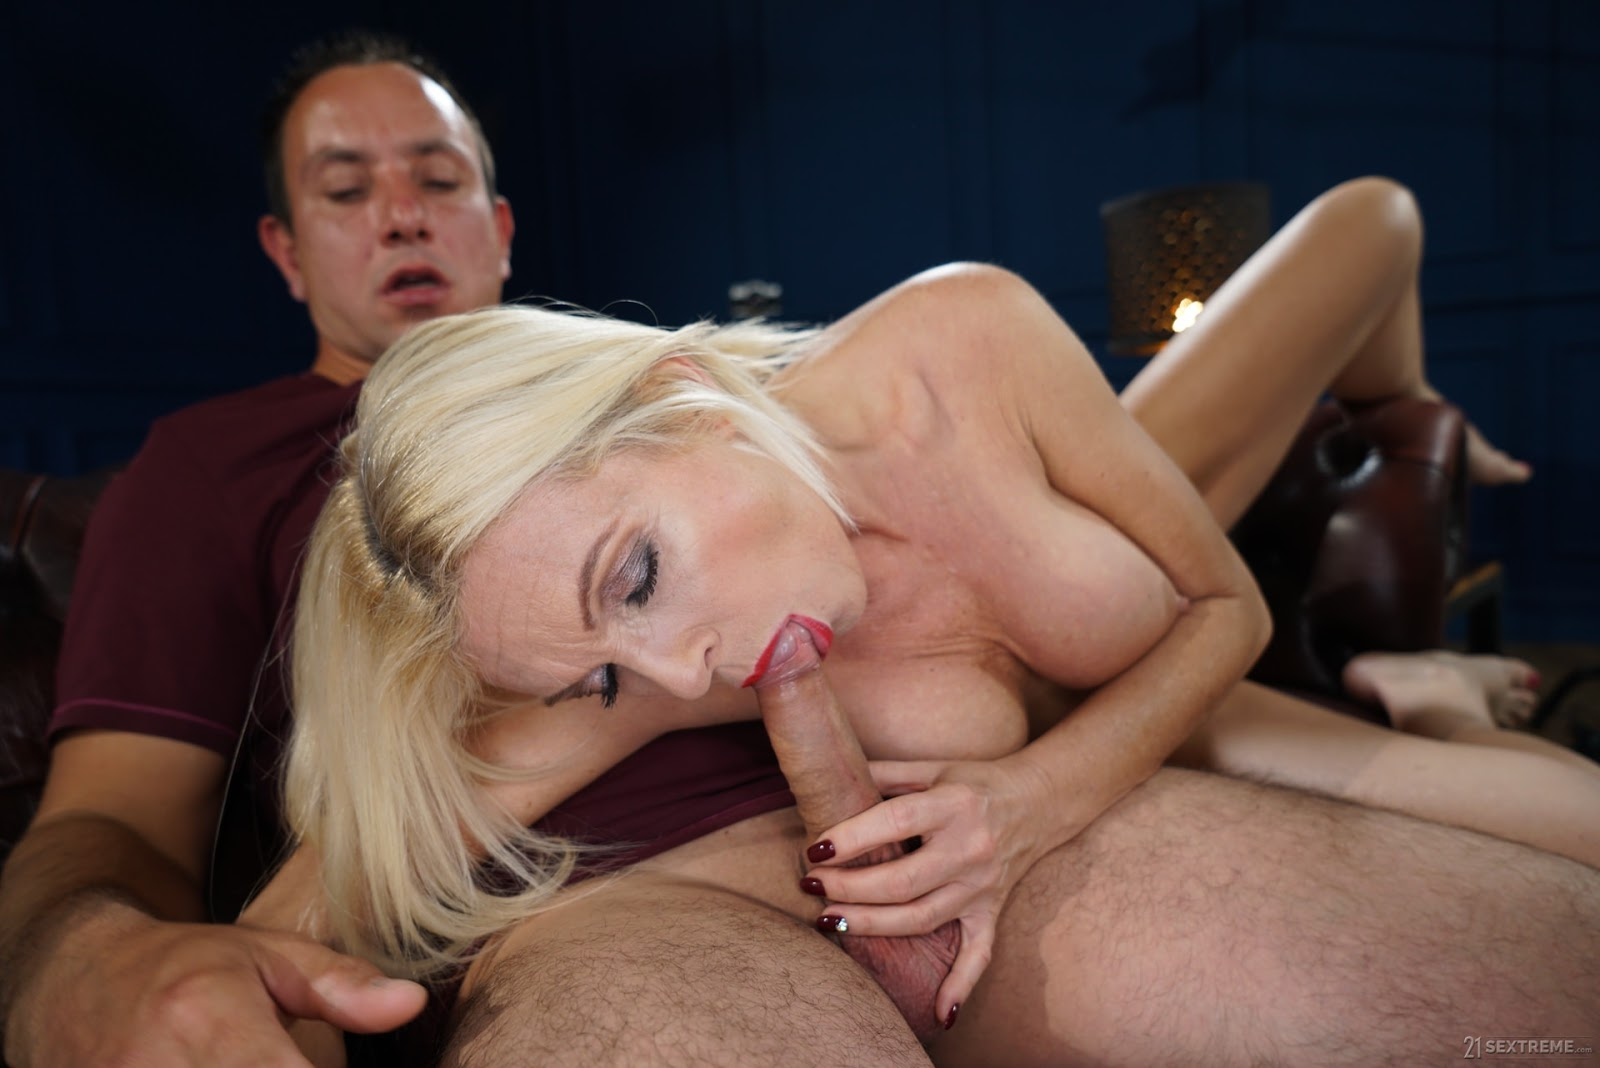 Horny Rookie Slutty Master,21 SEXTREME, 4K, Anal, Threesome, Uncensored, Westen, Westen Porn,Rob , Franny